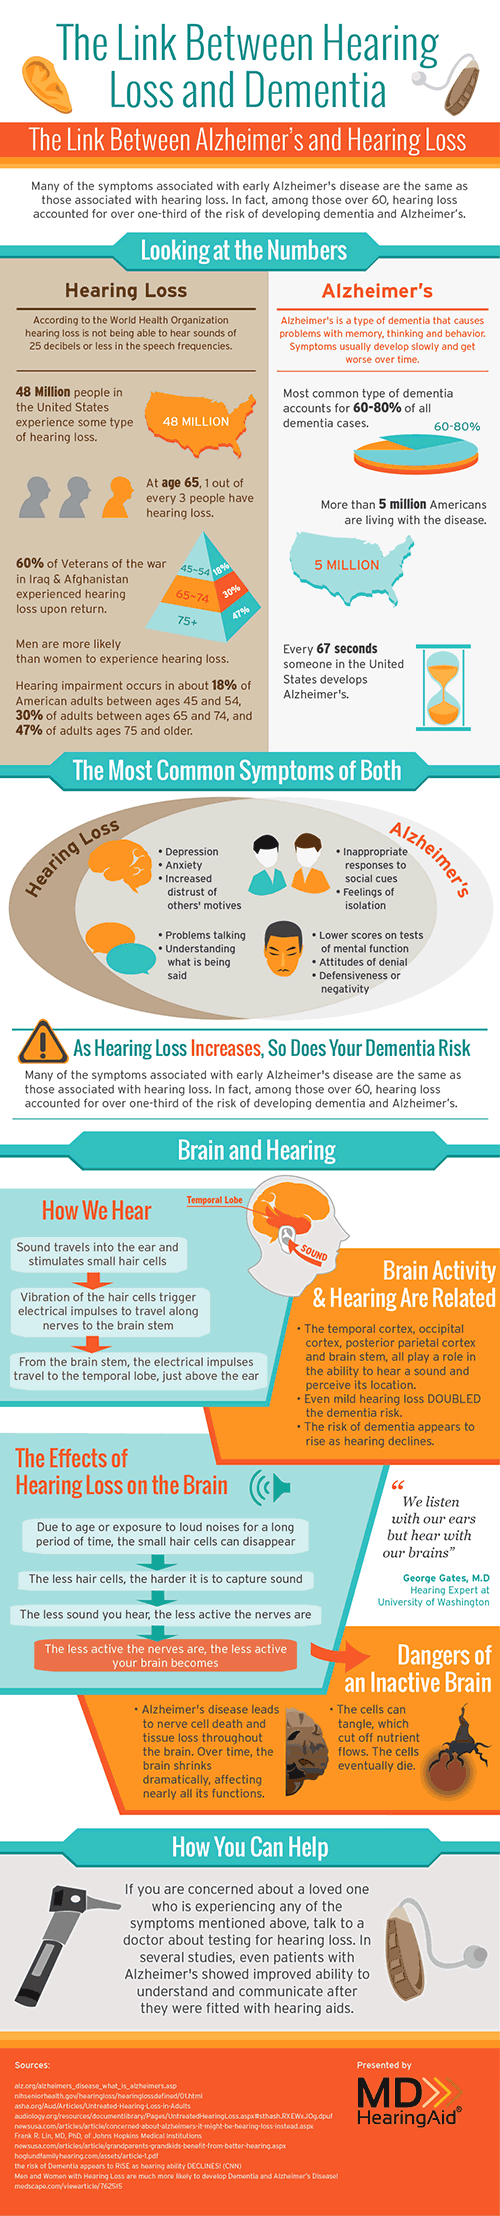 Alzheimer's and Hearing Loss Infographic